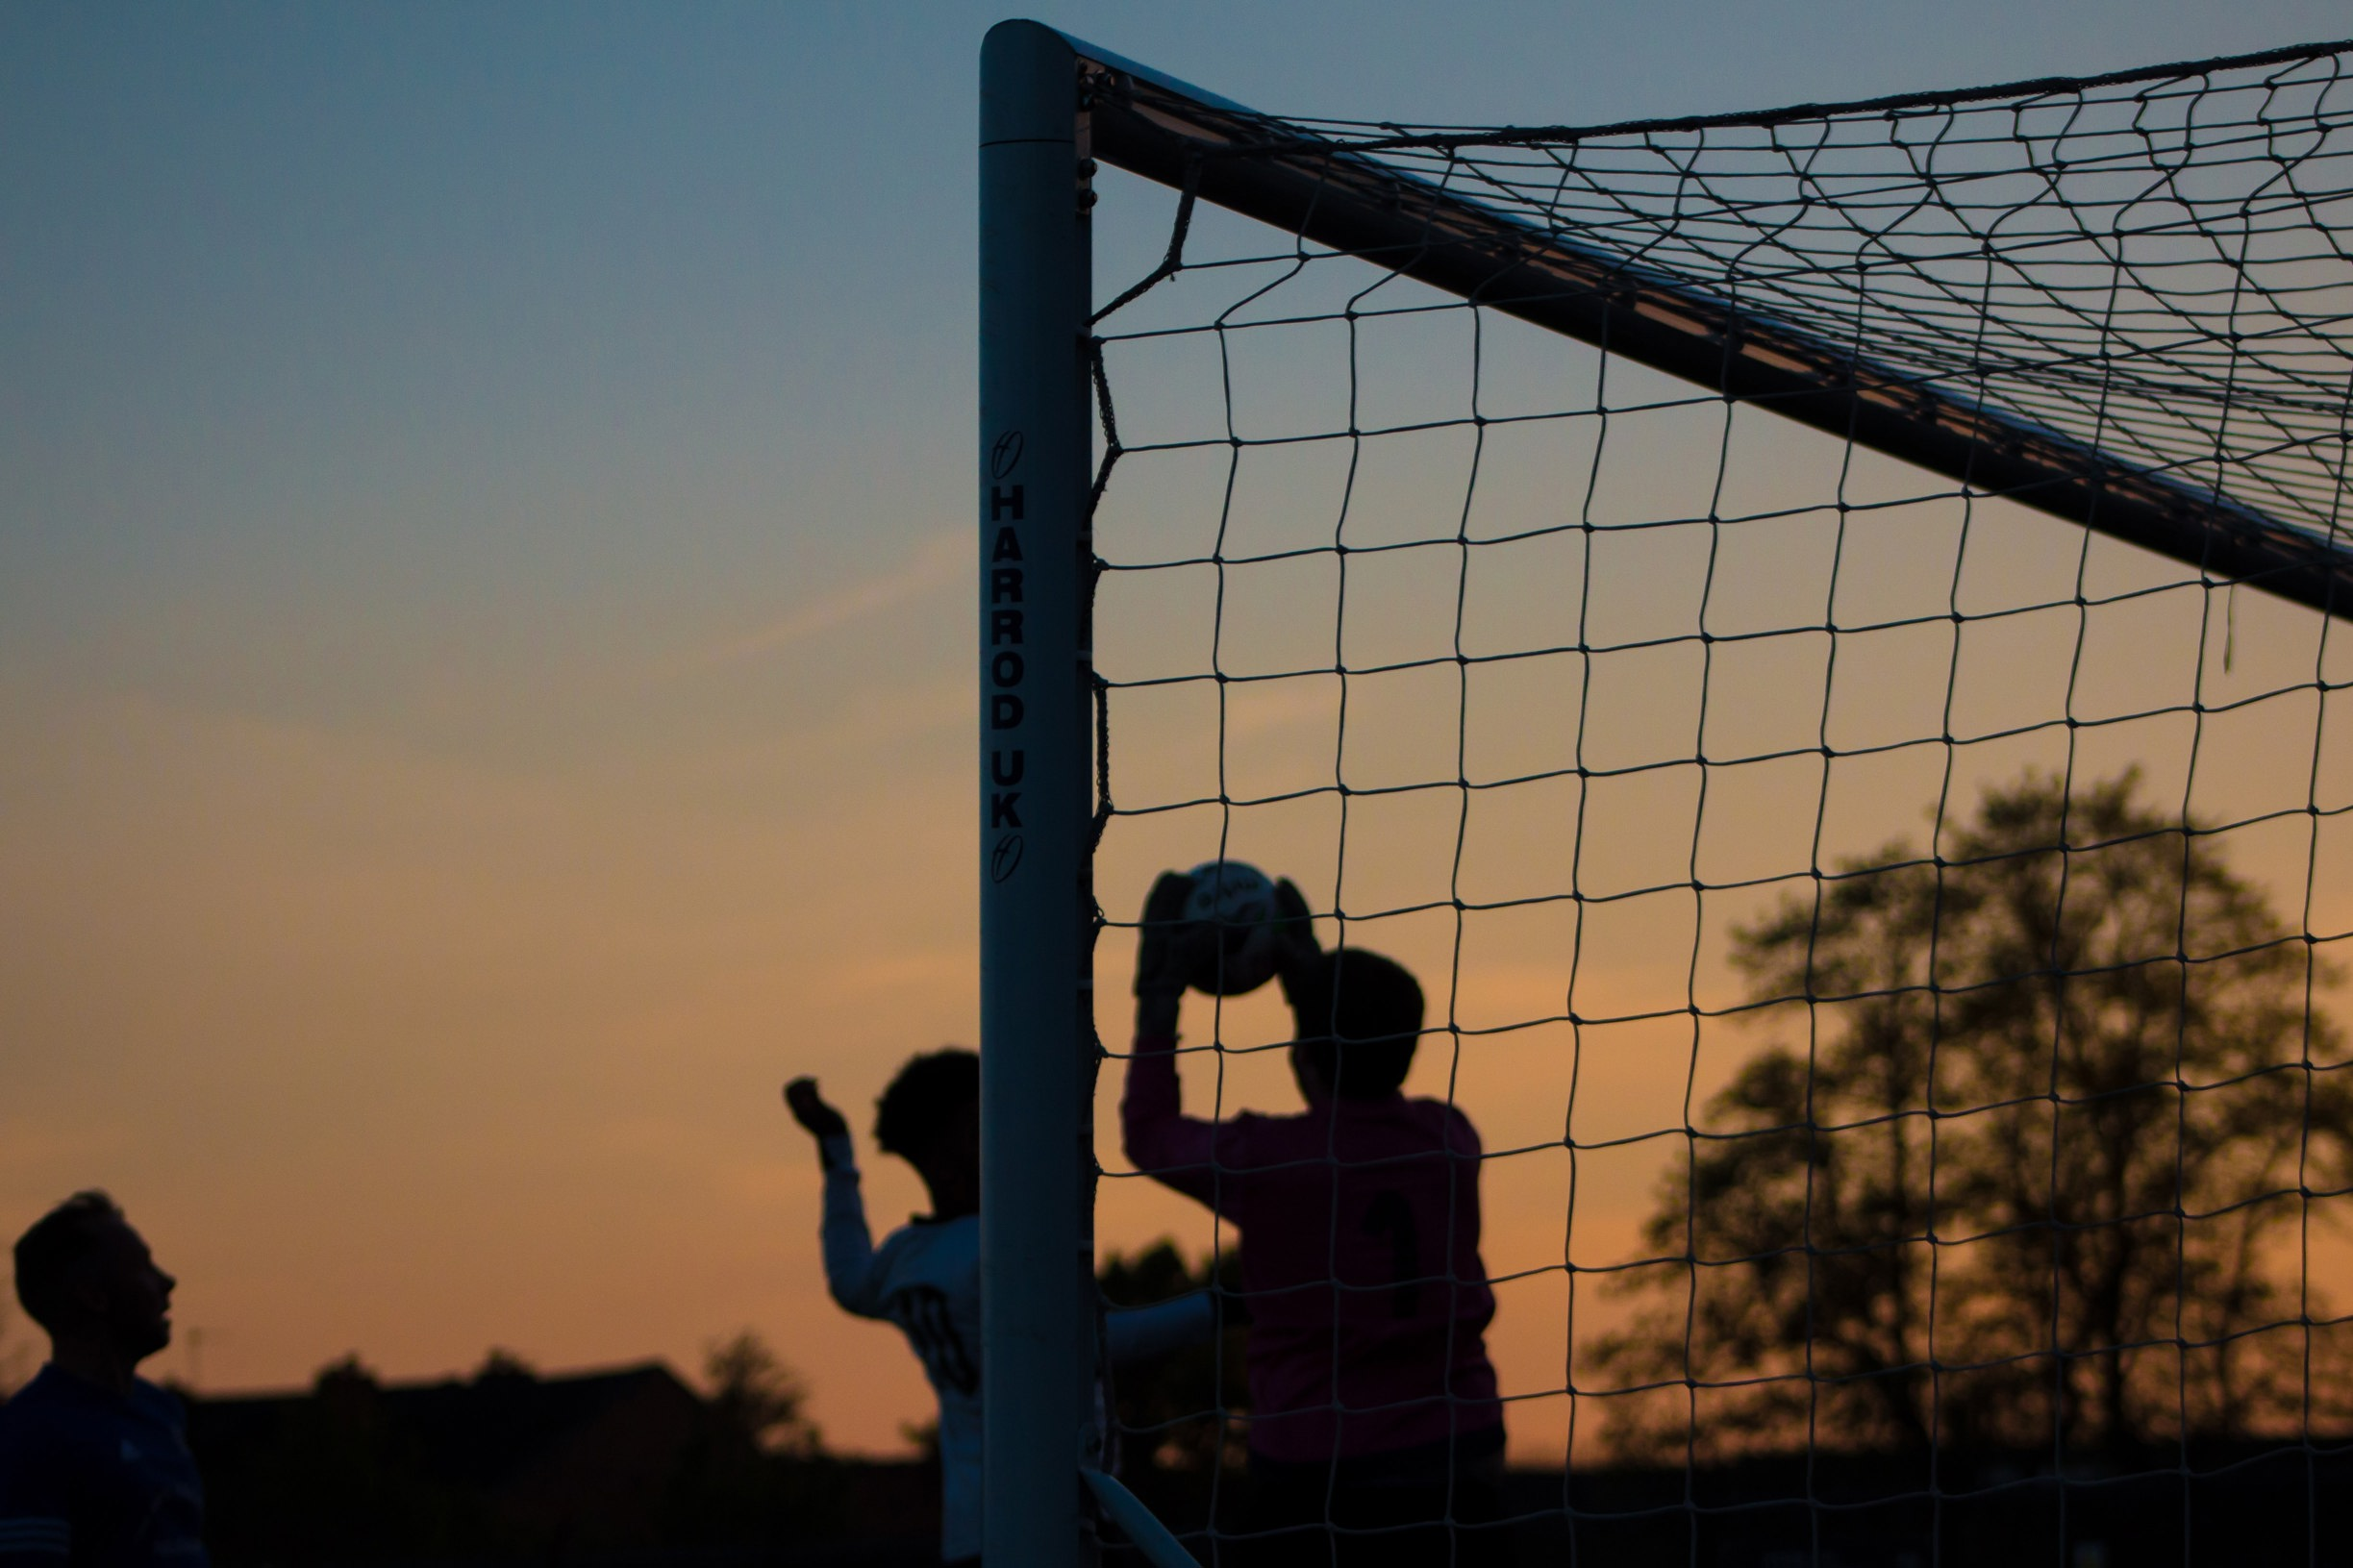 A goalkeeper saves a goal, silhouetted against a sunset